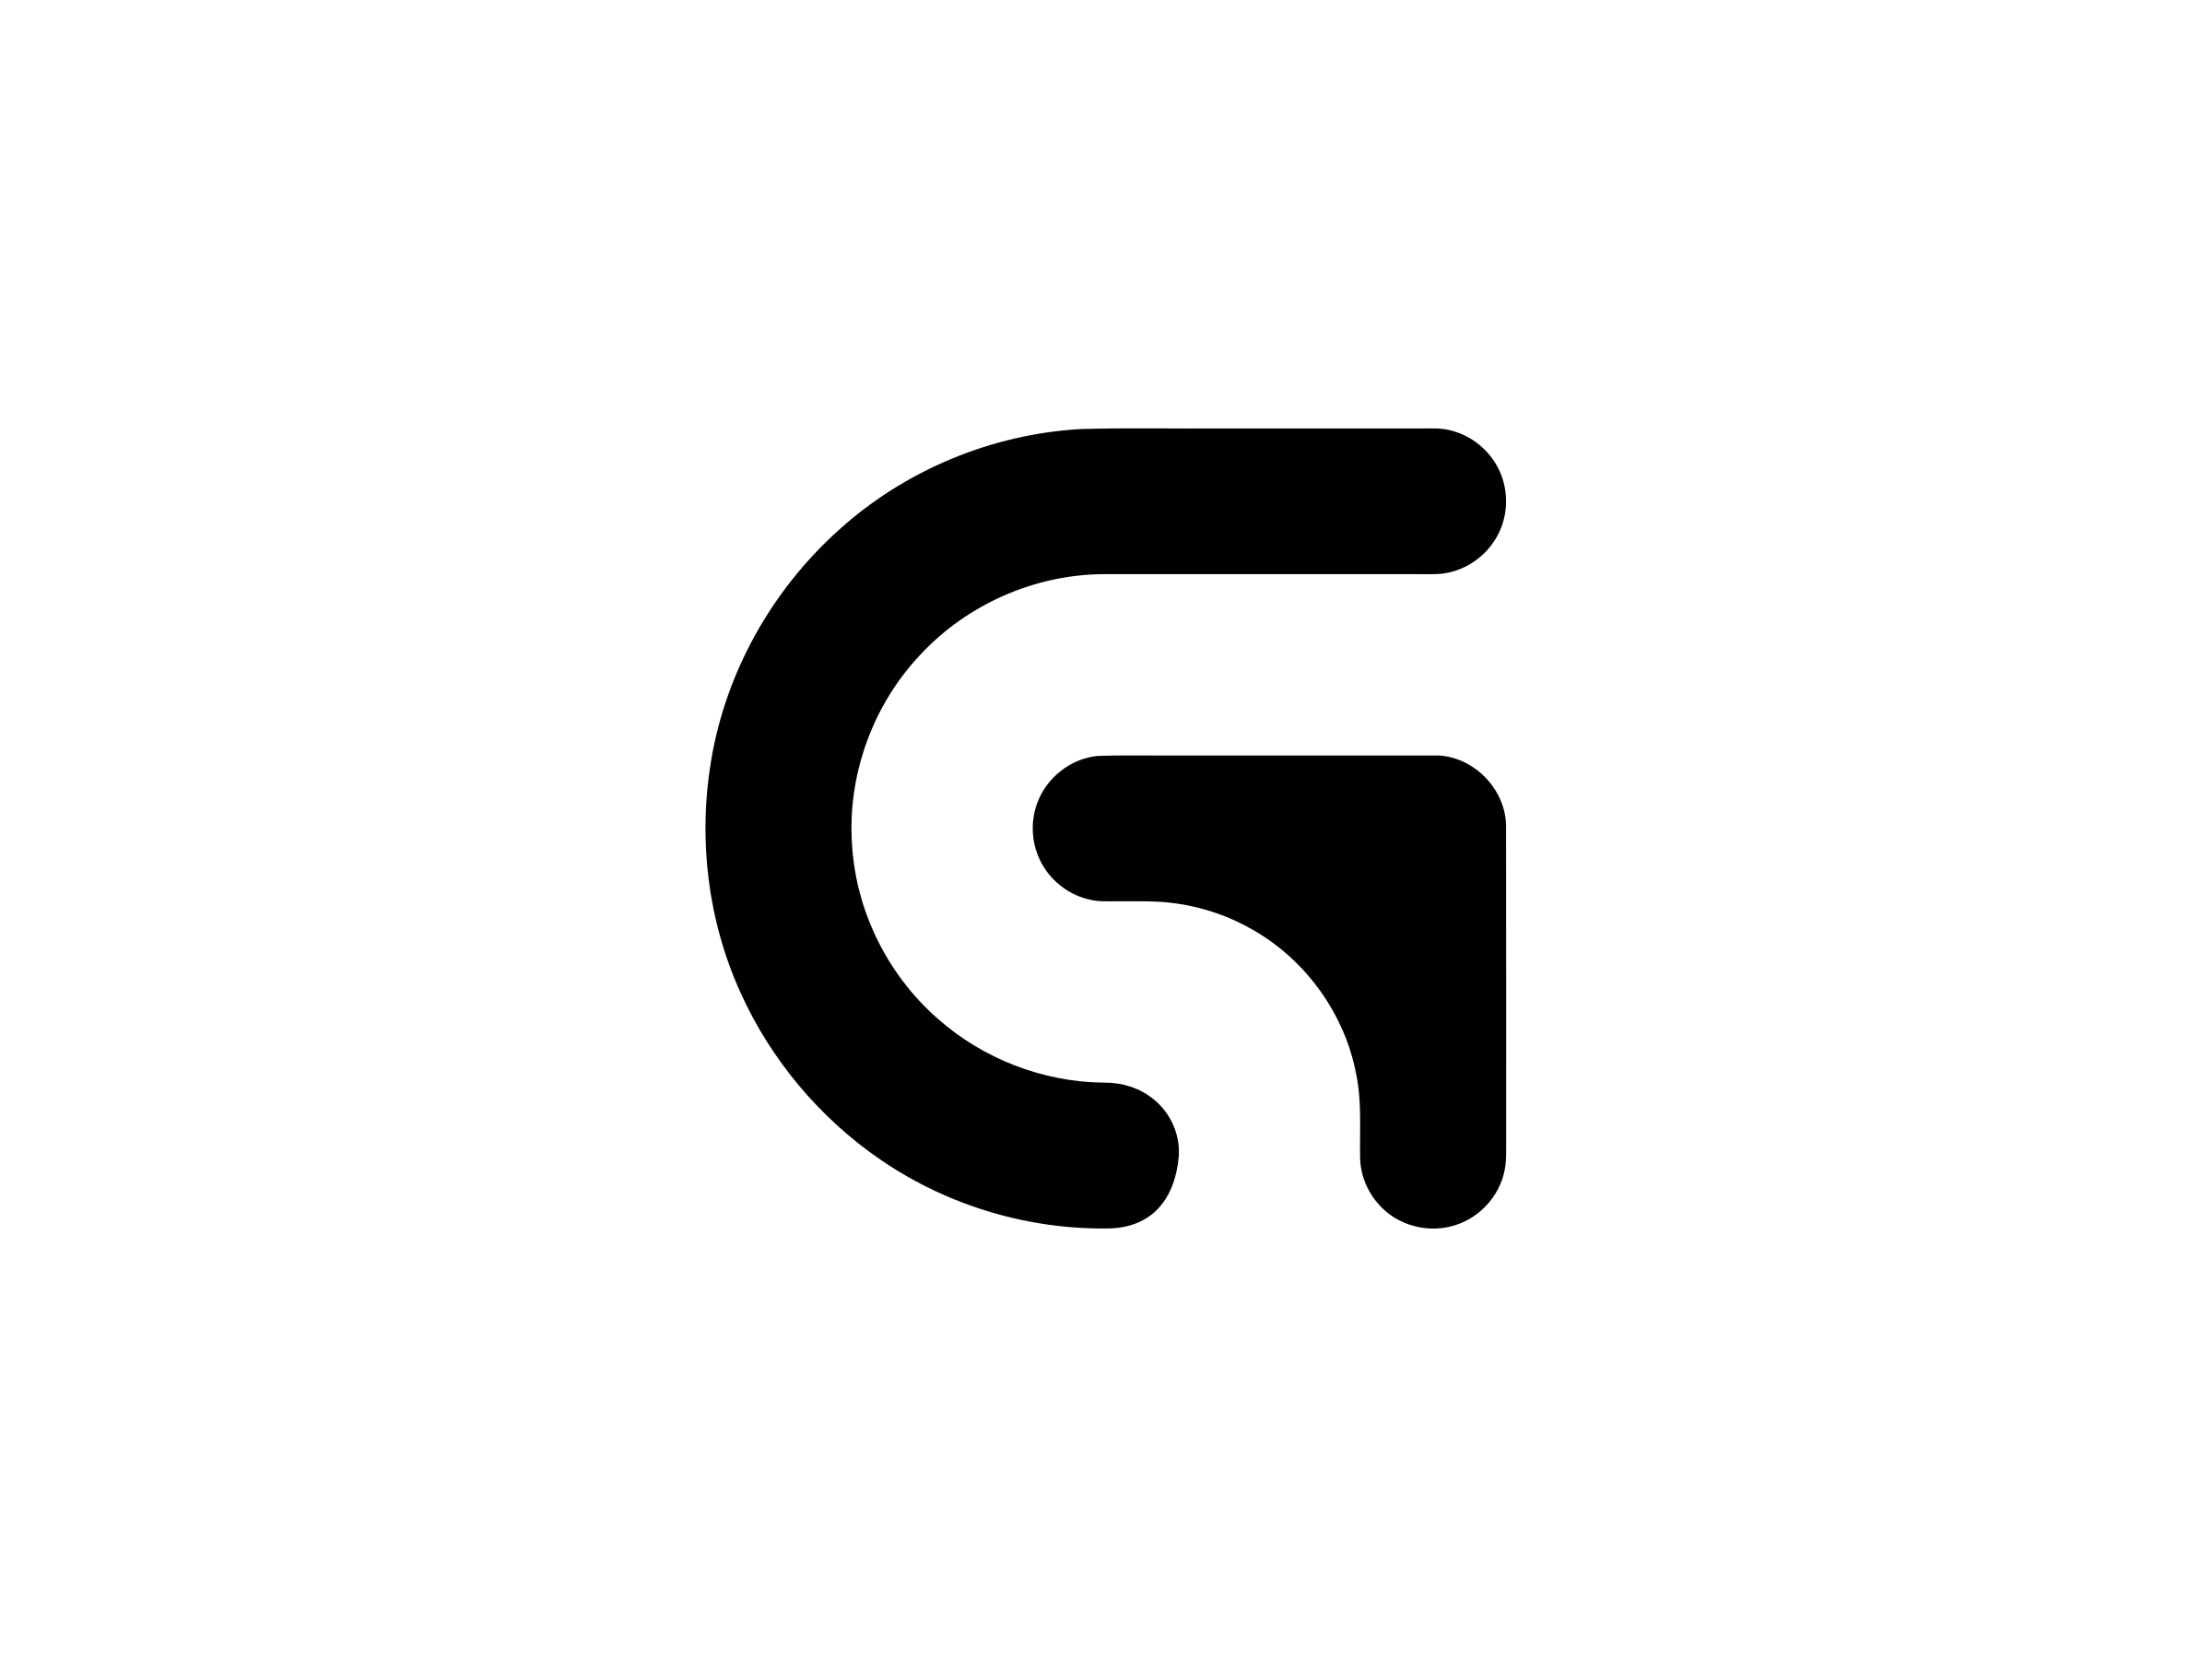 Logitech Gaming Logo PNG Transparent